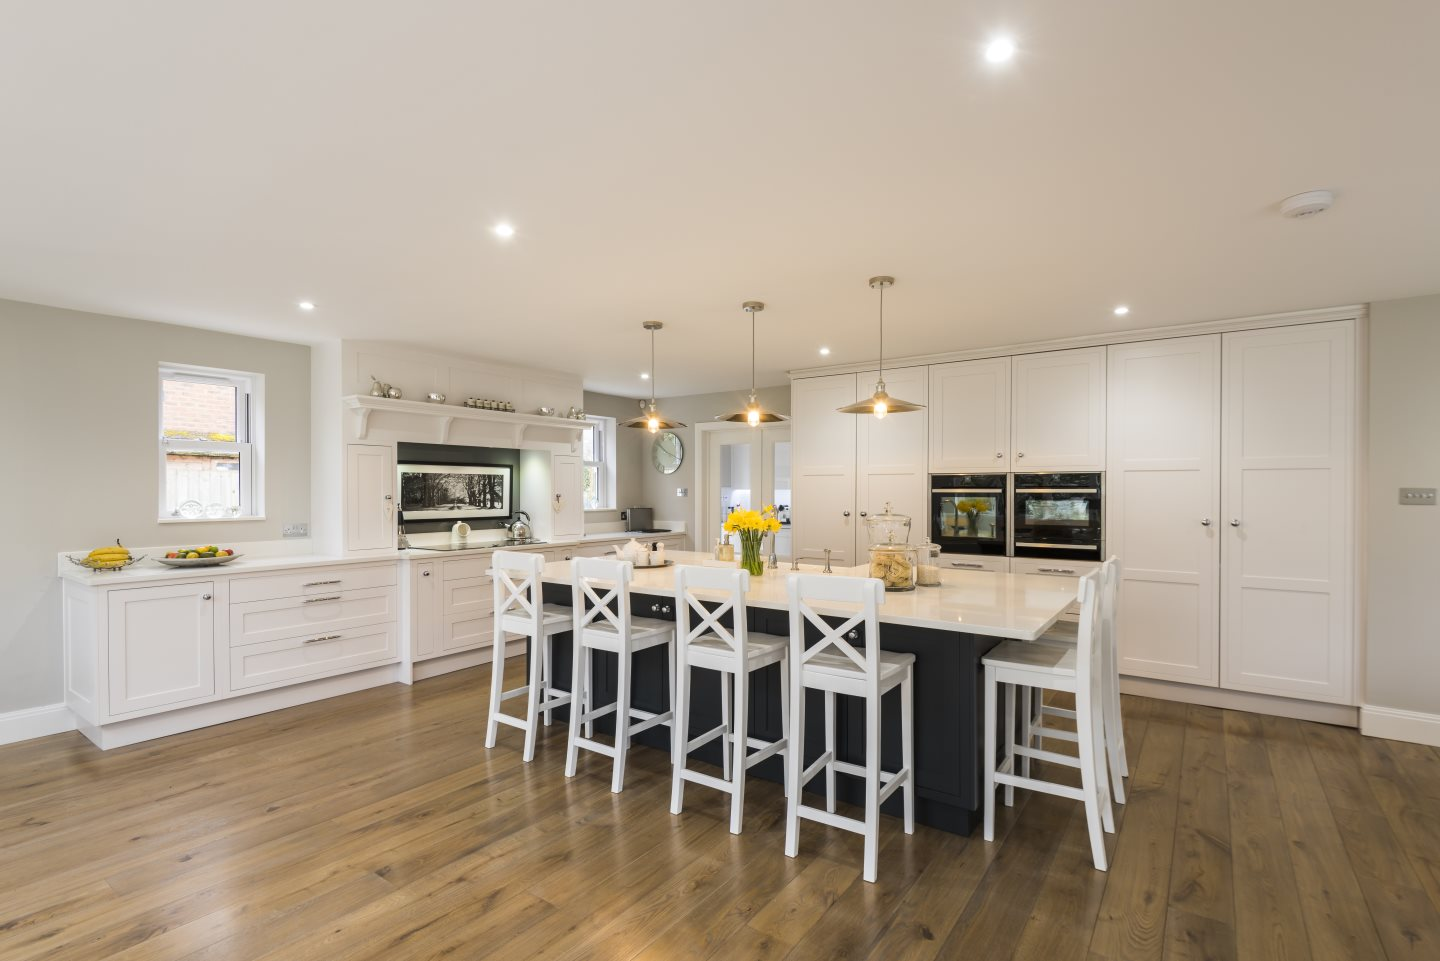 Surrey exhibitors Kitchen design companies in surrey